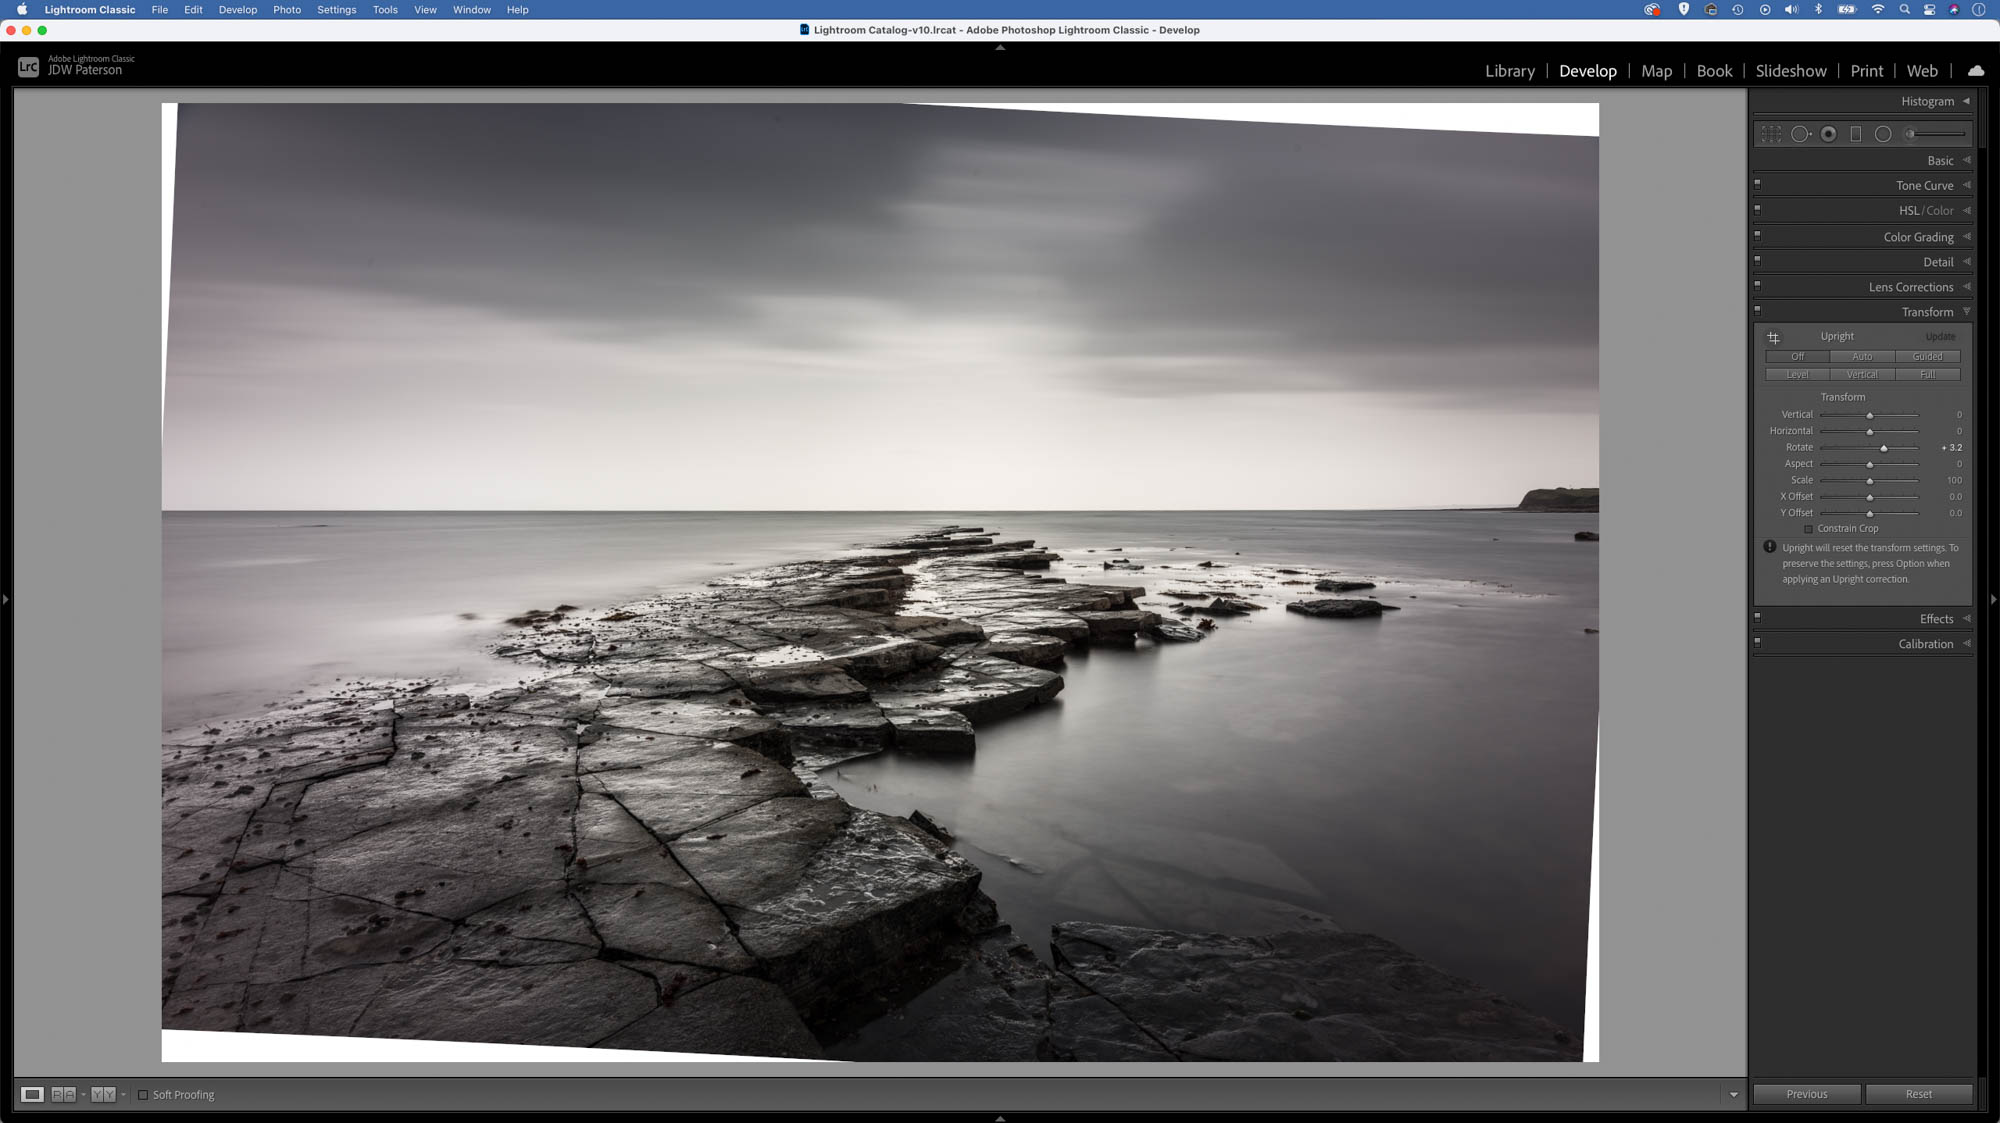 Screenshot showing a rotated image to level the horizon in the scene in Adobe Lightroom